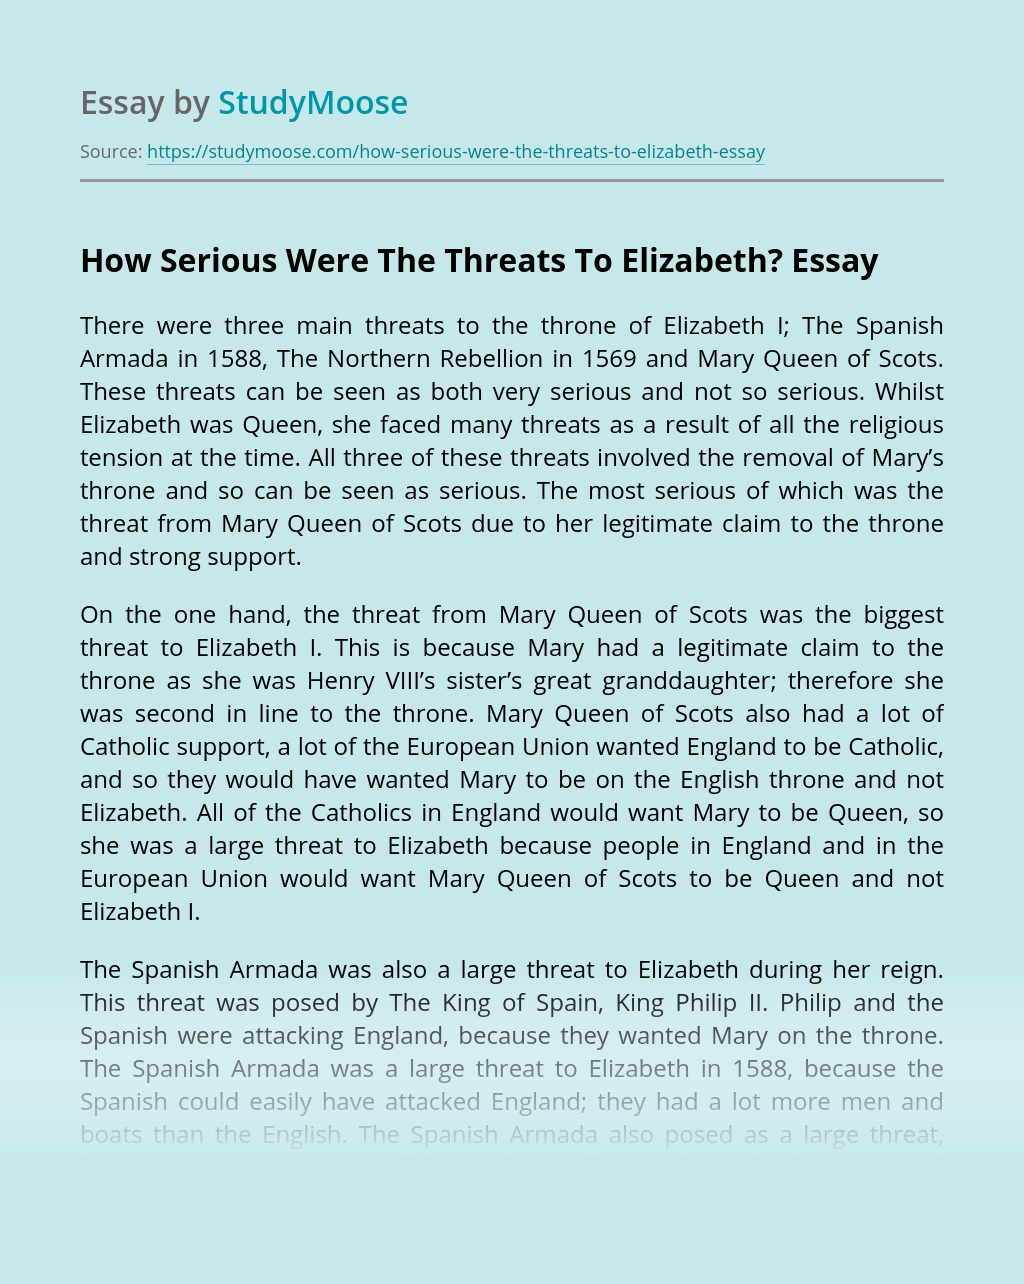 How Serious Were The Threats To Elizabeth?